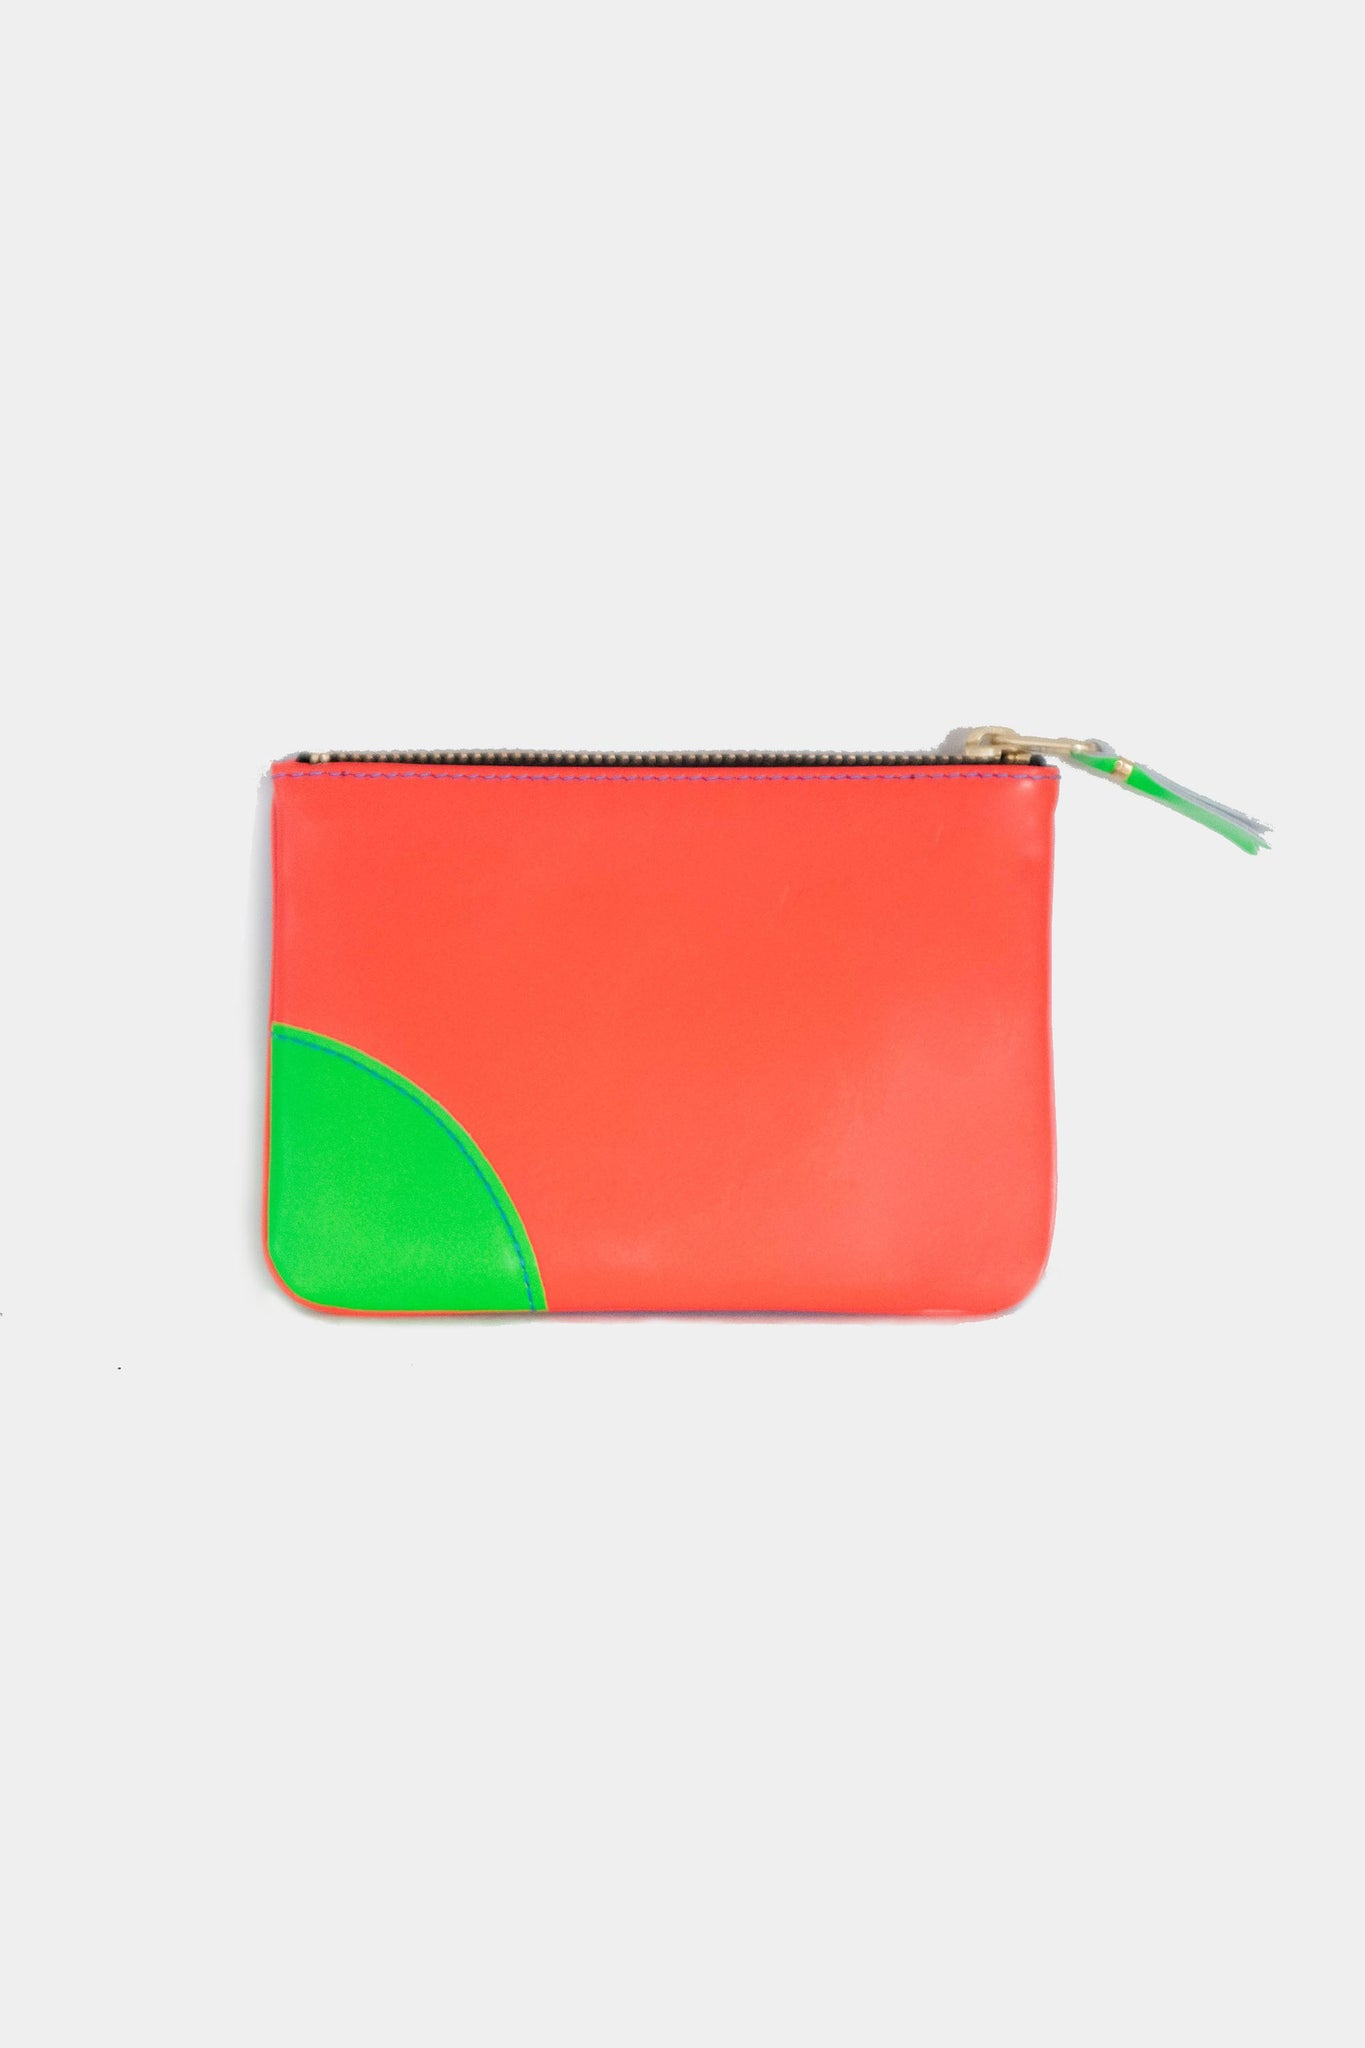 super fluo pouch, orange and blue